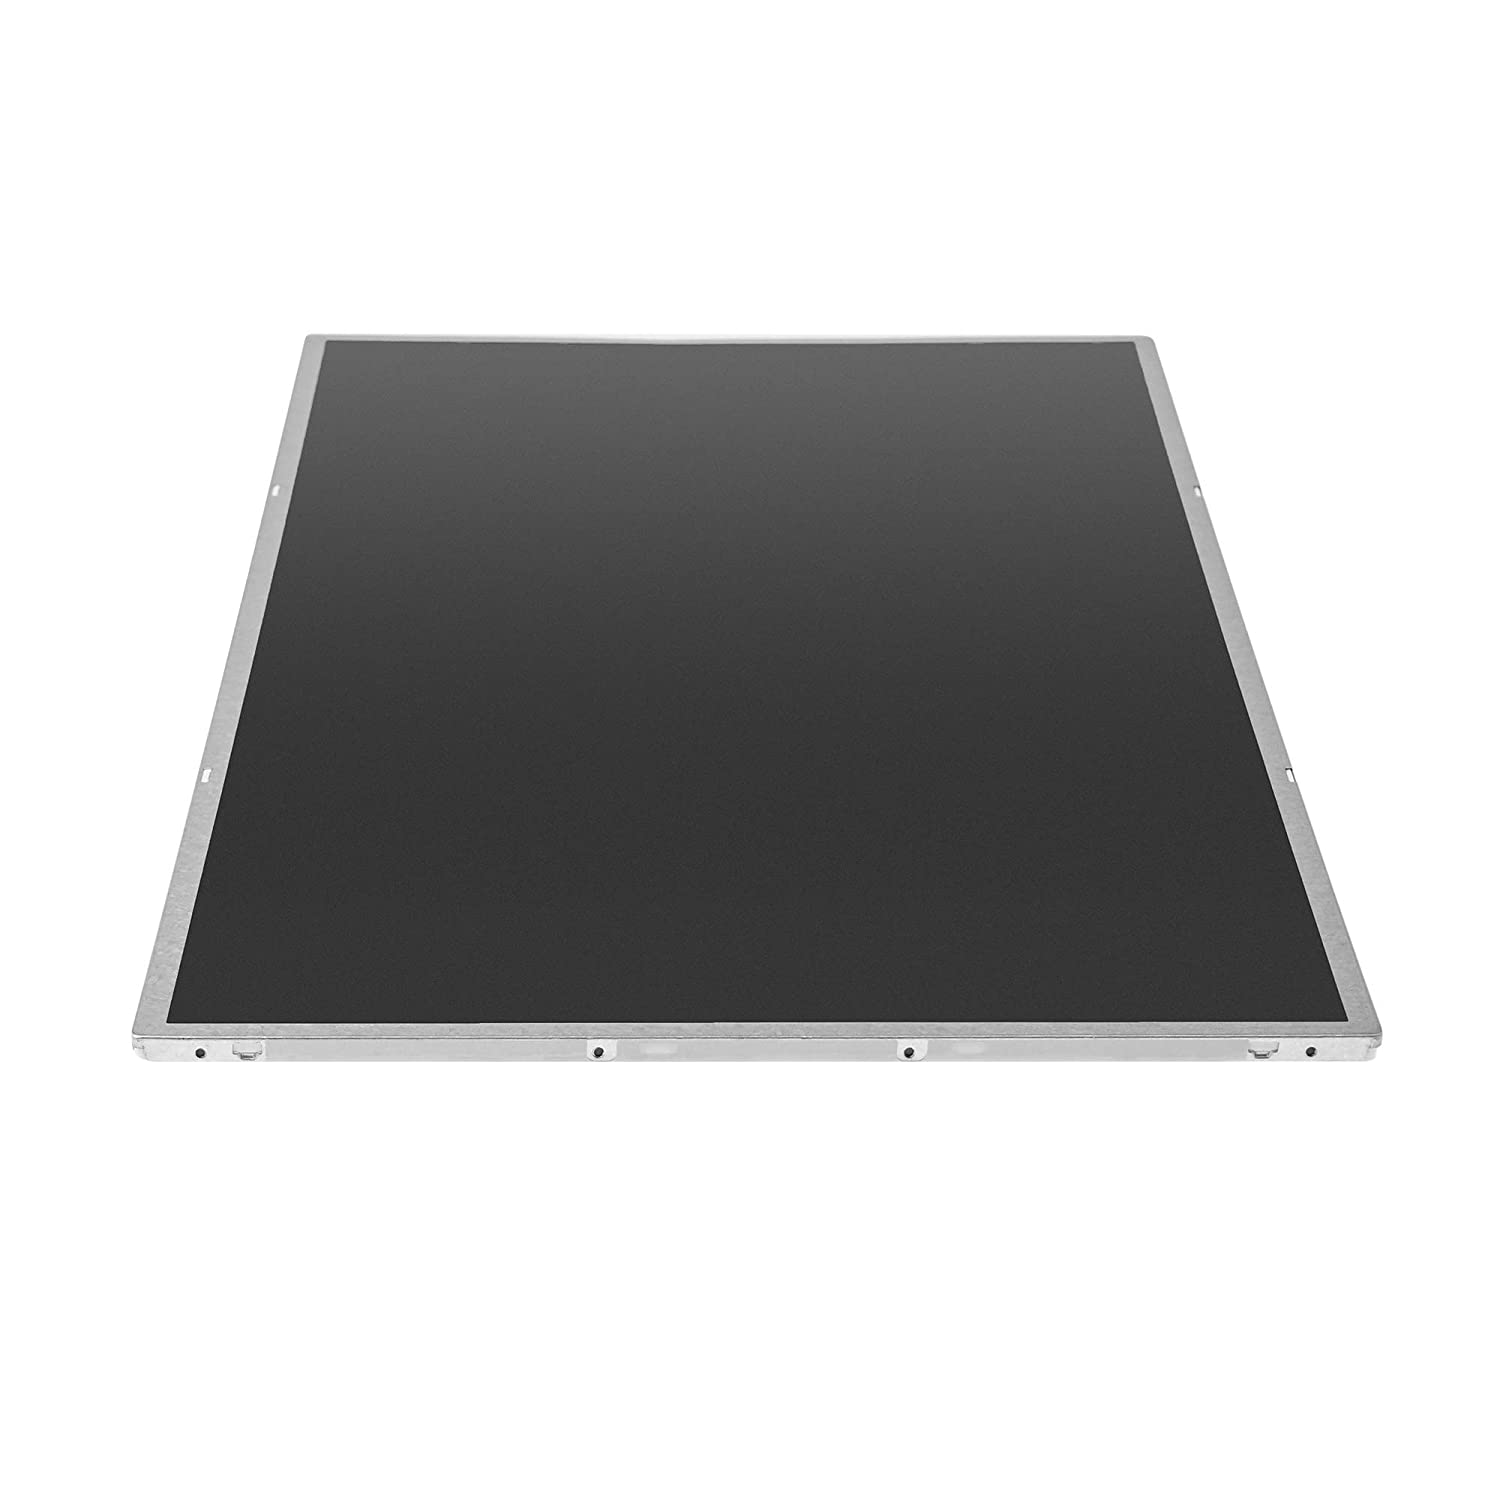 Screen Replacement for LTN156AT05 LTN156AT24 LTN156AT32 LP156WH4 LP156WH2 B156XW02 LTN156AT02 N156BGE-L21 N156BGE-L31 N156BGE-LA1-15.6 LED Backlit Display HD 1366x768 Screen 40 pin LVDS Glossy